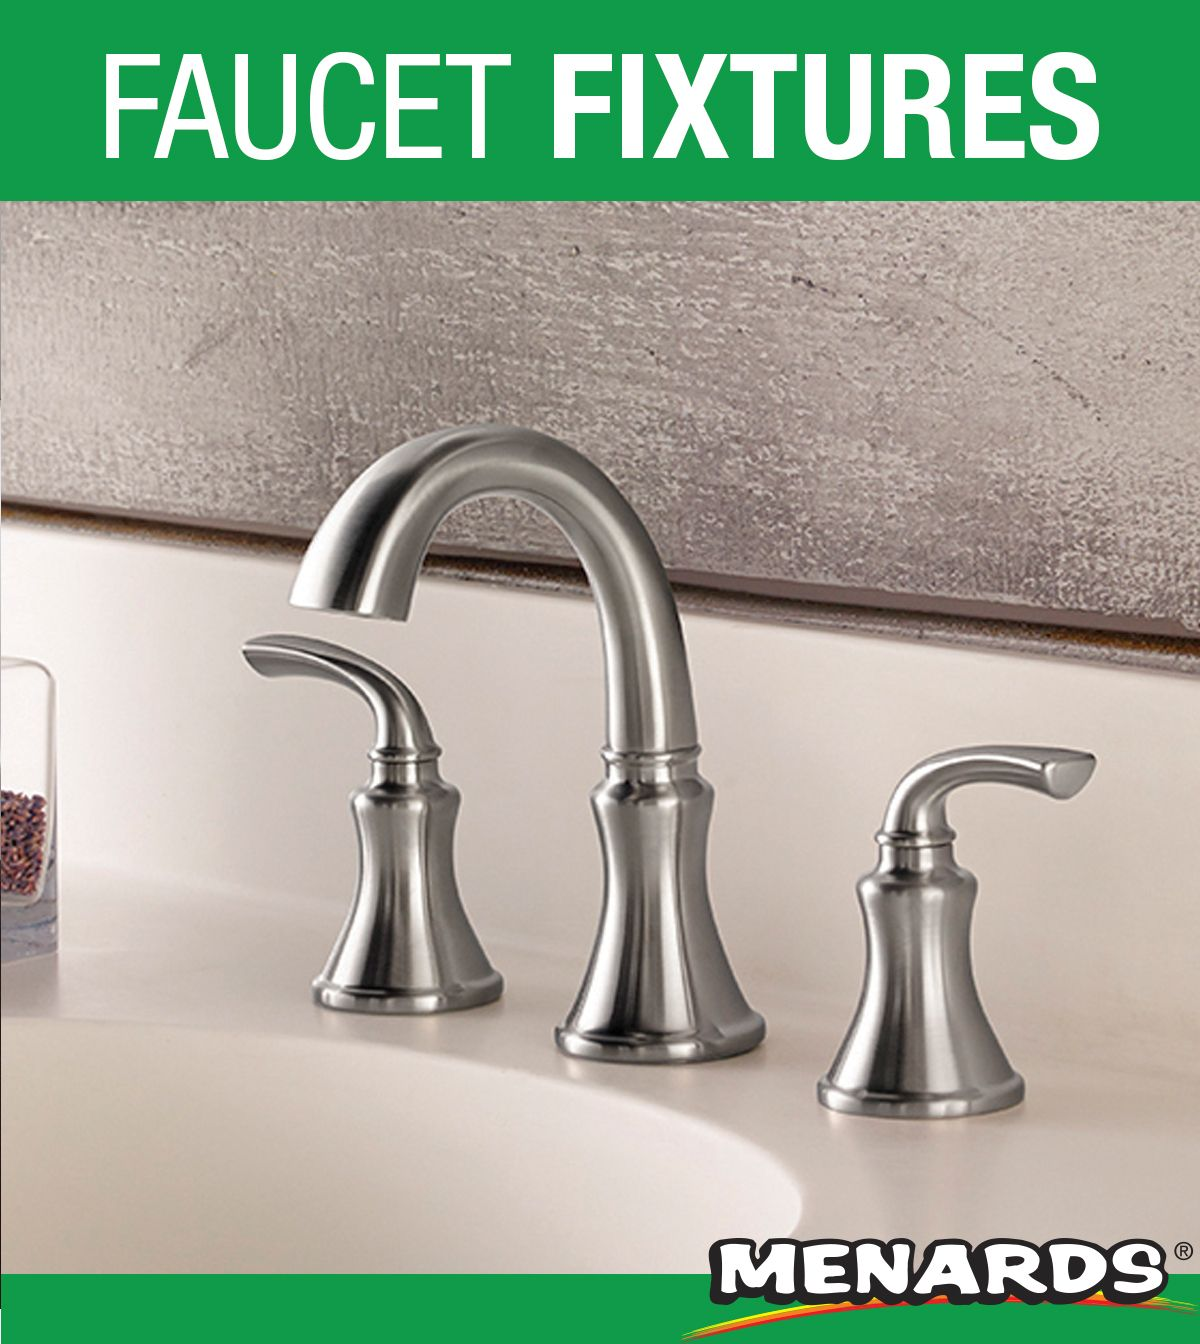 The Clean And Sleek Pfister Solita Widespread Bathroom Faucet In A Brushed Nickel Widespread Bathroom Faucet Bathroom Faucets Brushed Nickel Faucet